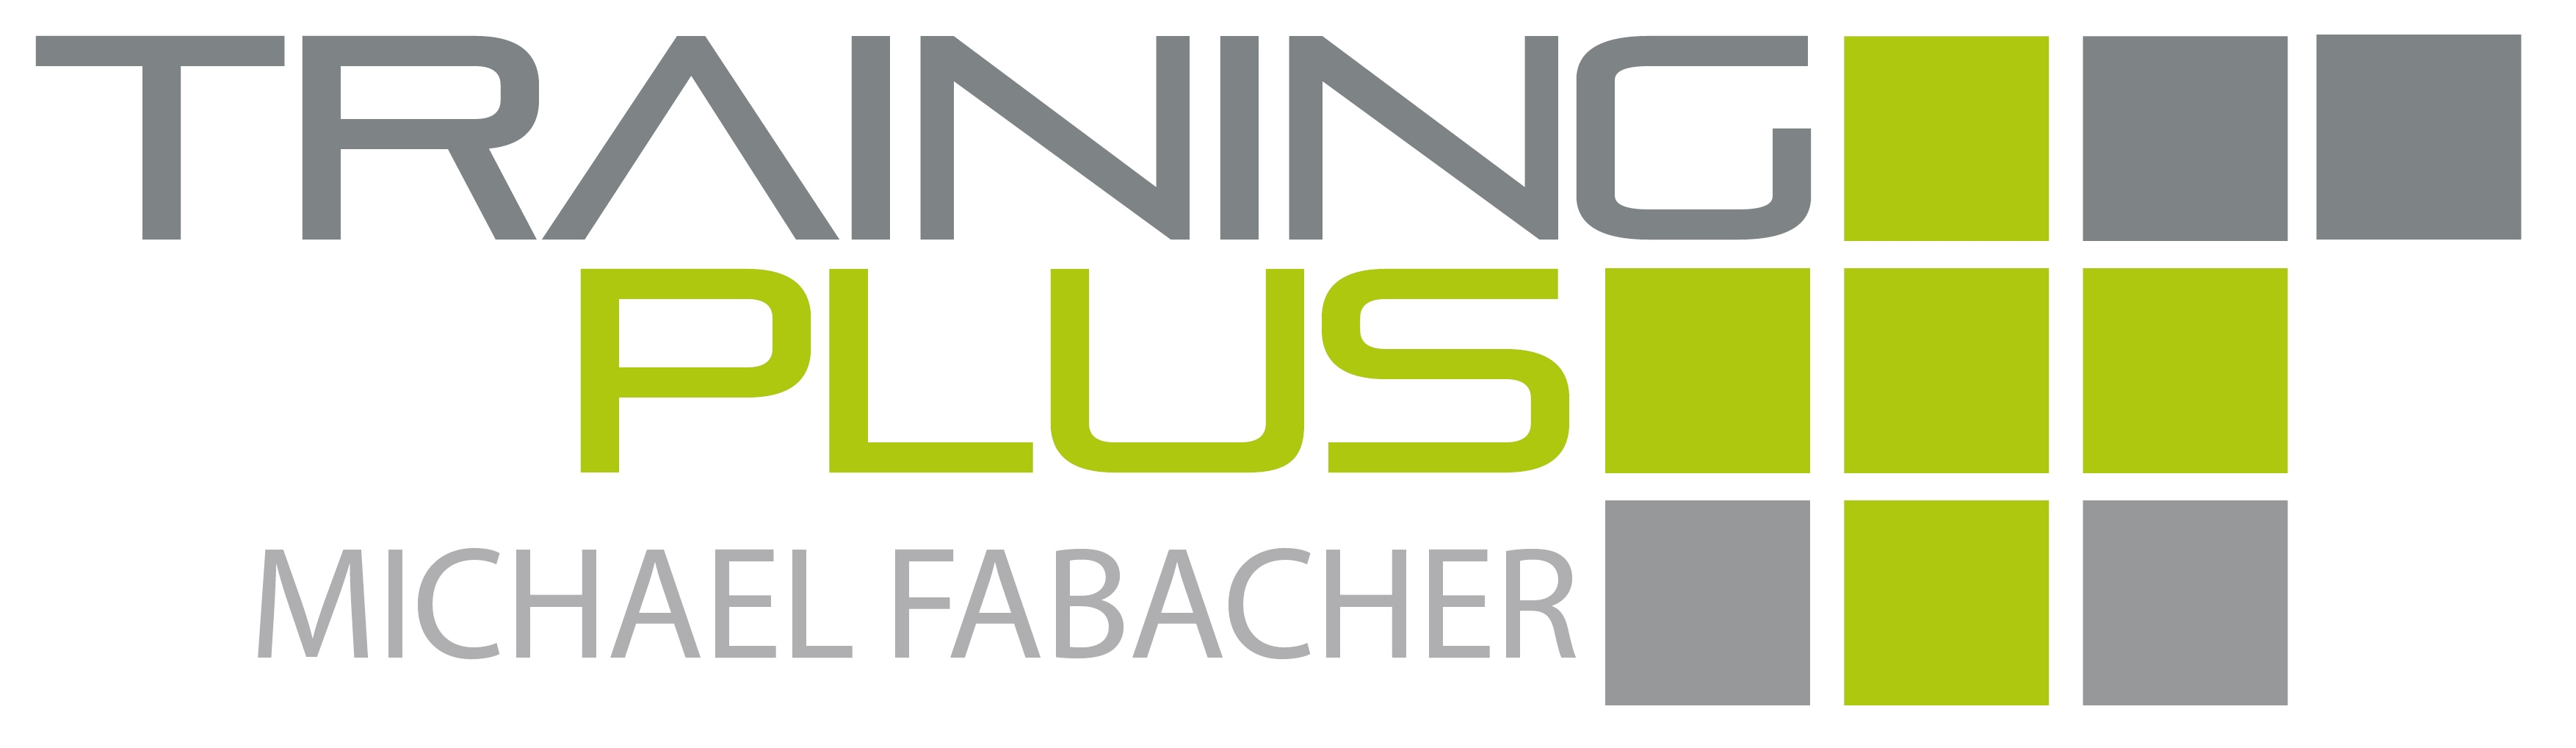 TrainingPlus Michael Fabacher